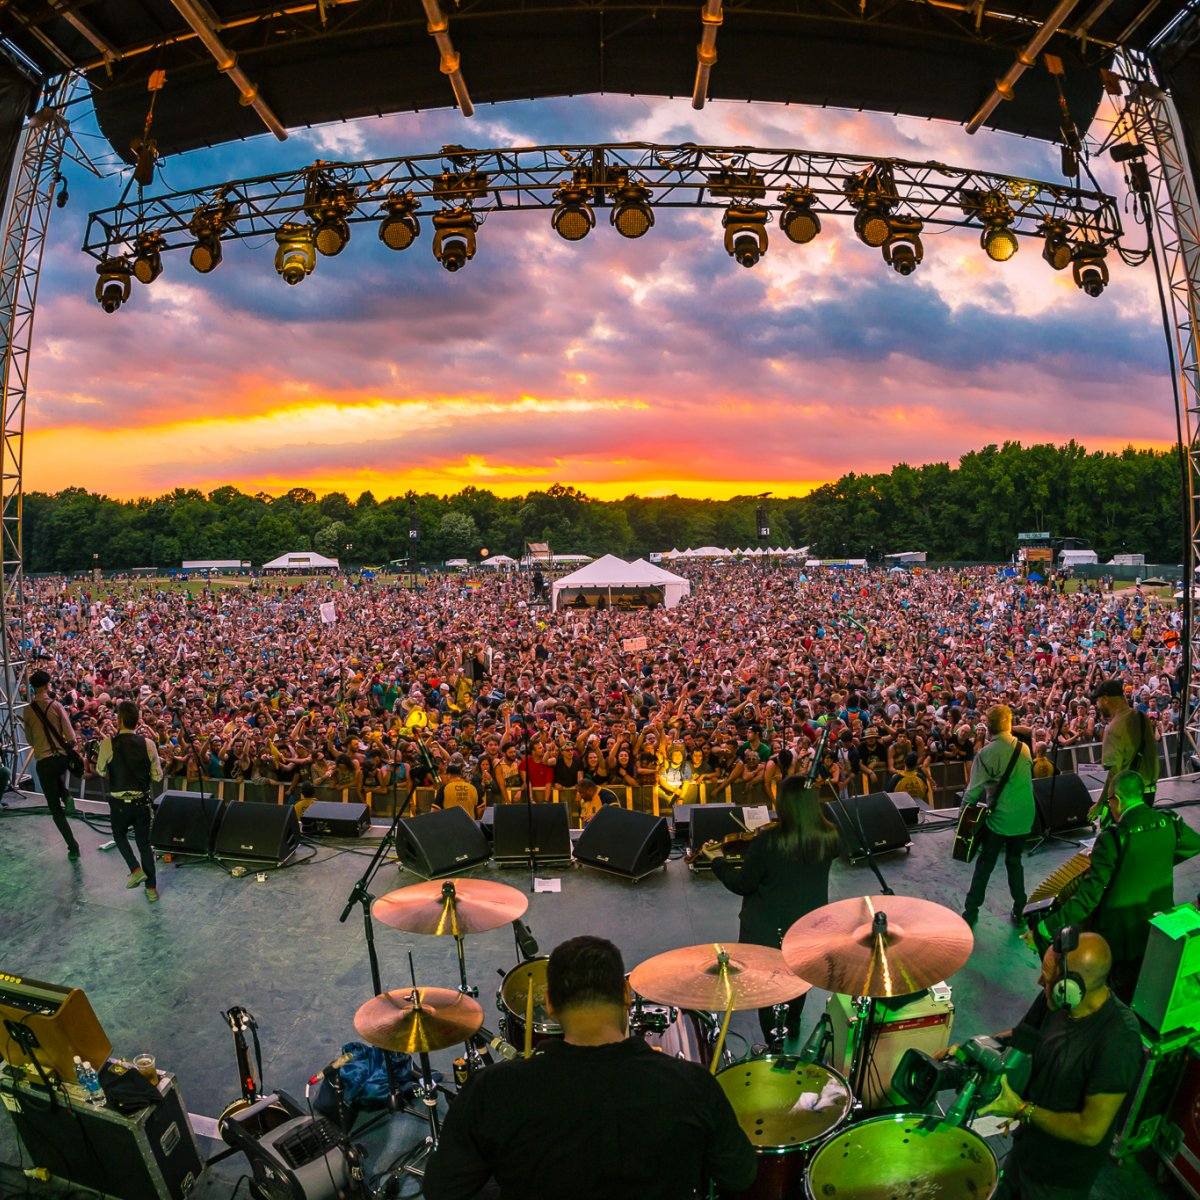 Image looking out into the crowd from behind performers on stage with a vibrant sunset at Firefly Music Festival